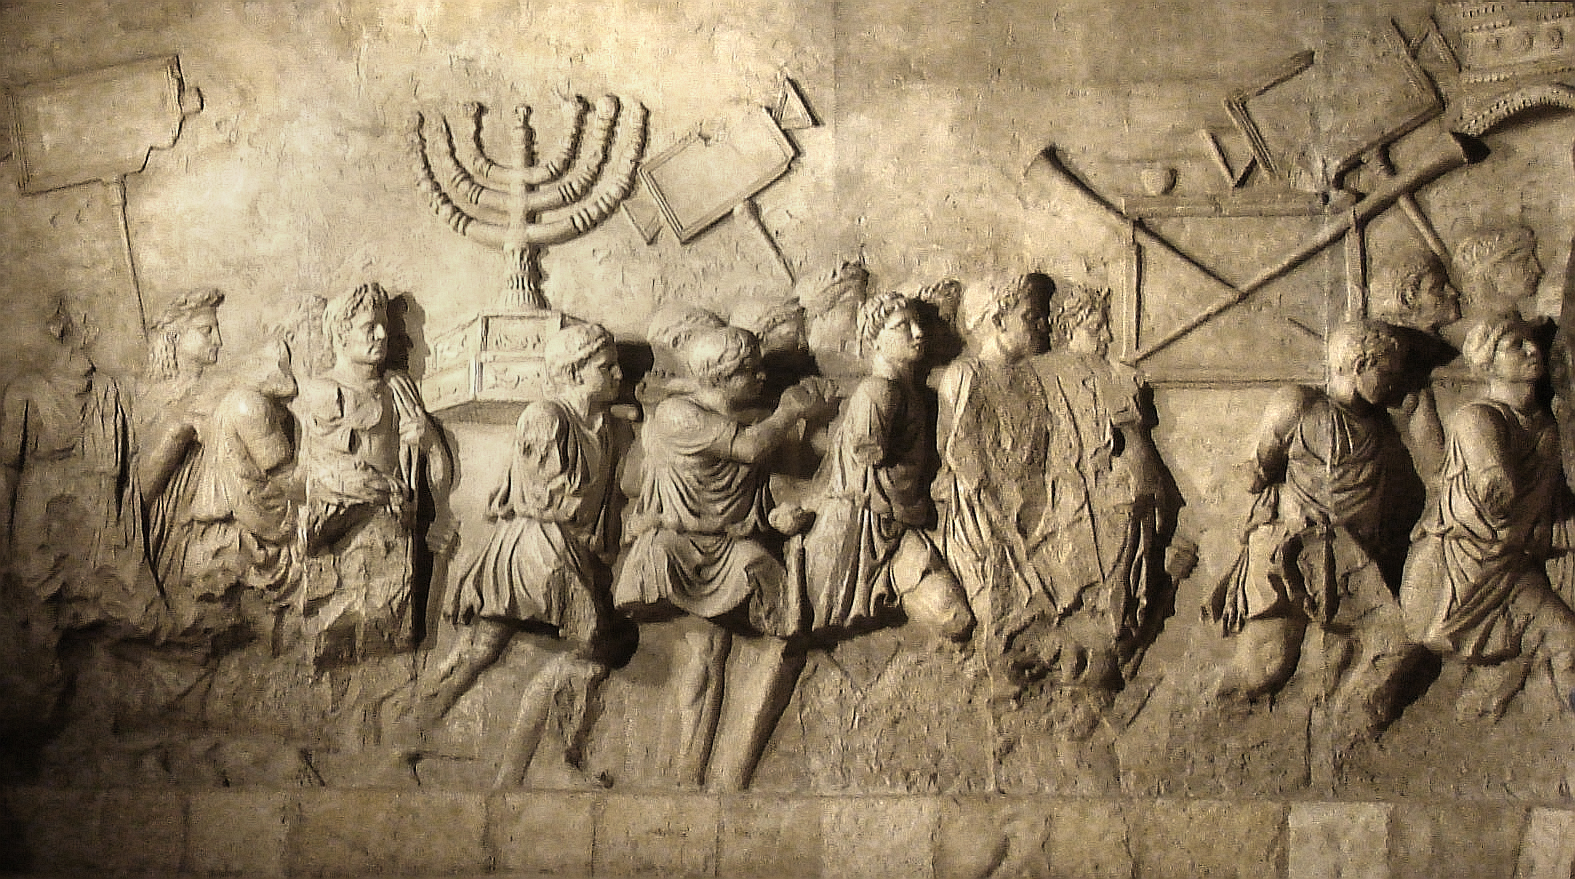 Arch_of_Titus_Menorah.jpg